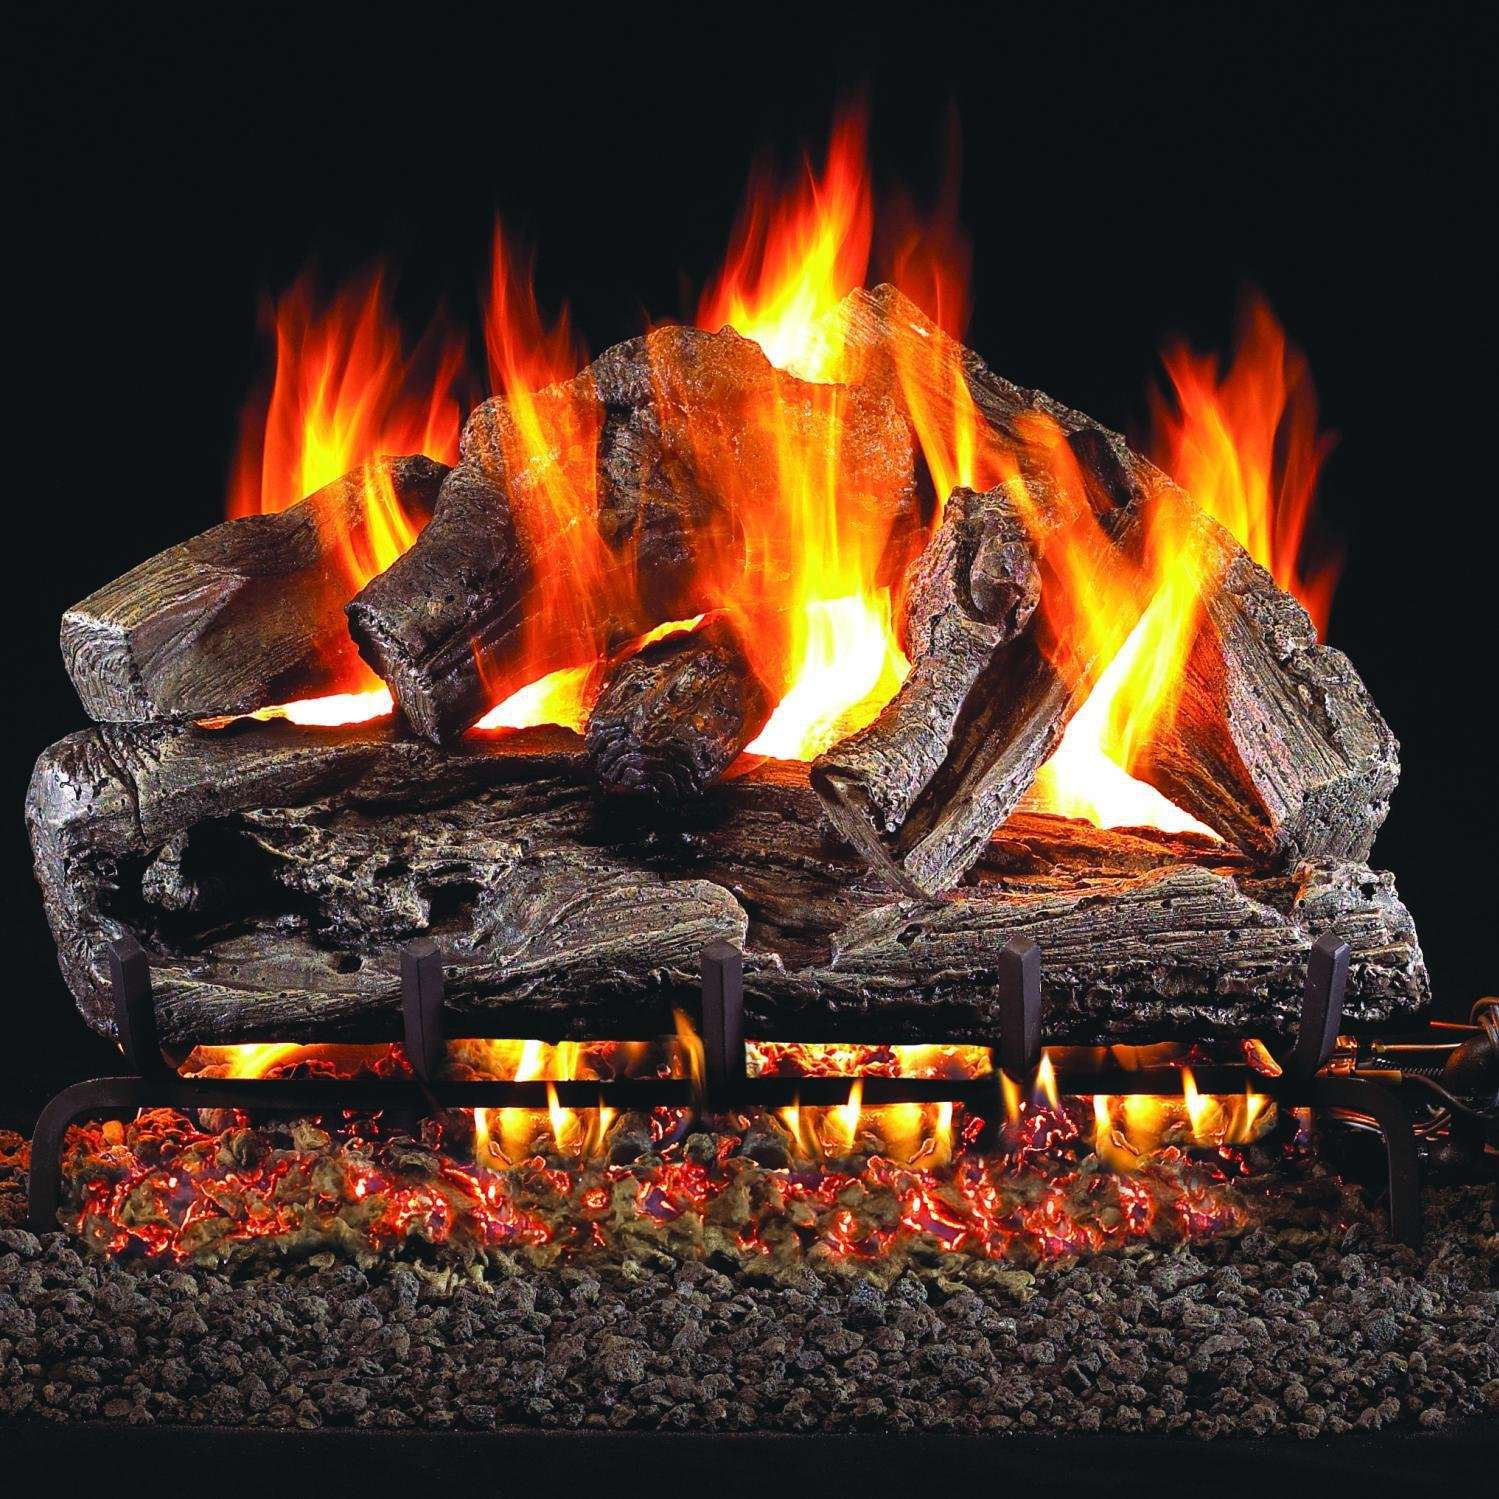 Peterson Real Fyre 24-inch Rugged Oak Gas Log Set With Vented Natural Gas G45 Burner - Match Light by Peterson Real Fyre